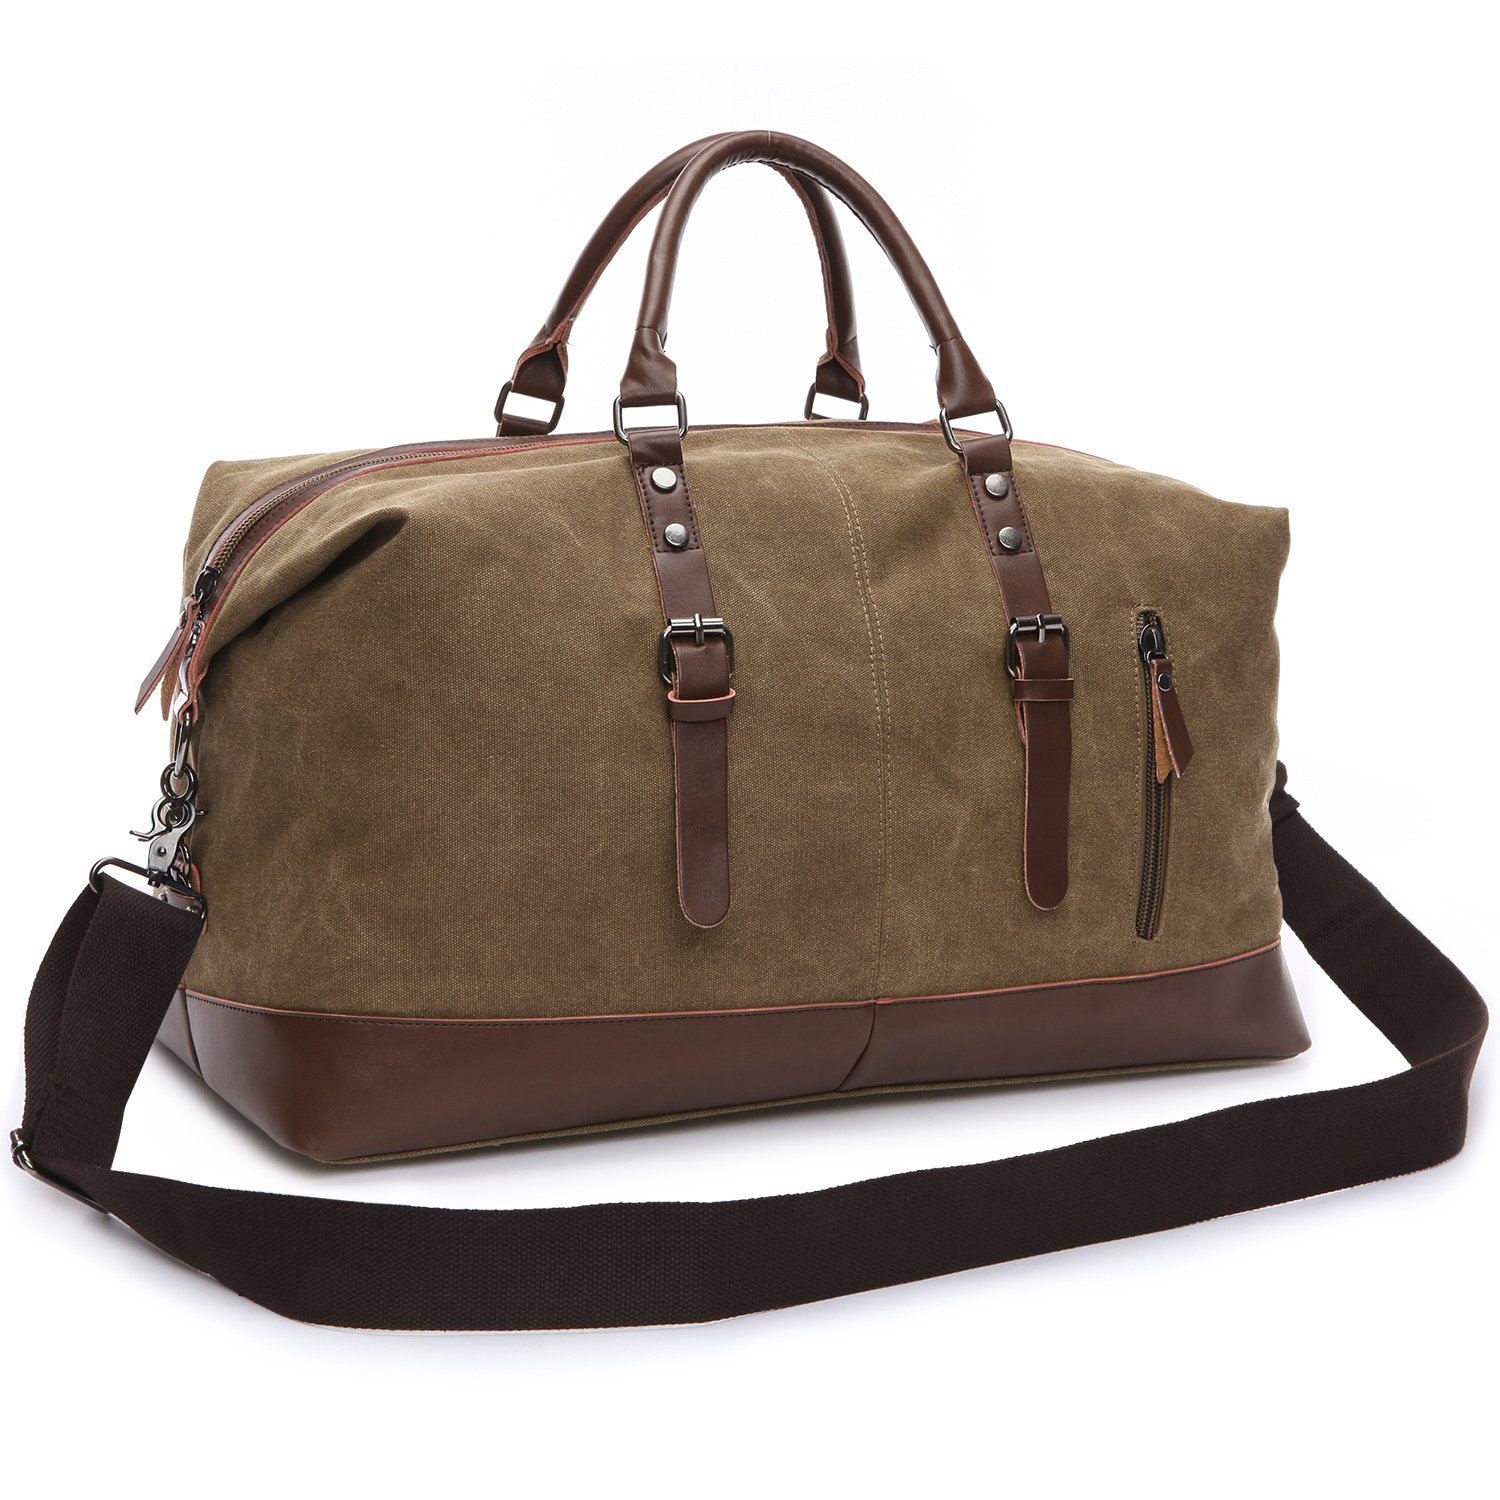 Duffle Travel Bag, Veckle Canvas Duffel Bag PU Leather Luggage Carry-on Bag for Weekend, Unisex Coffee